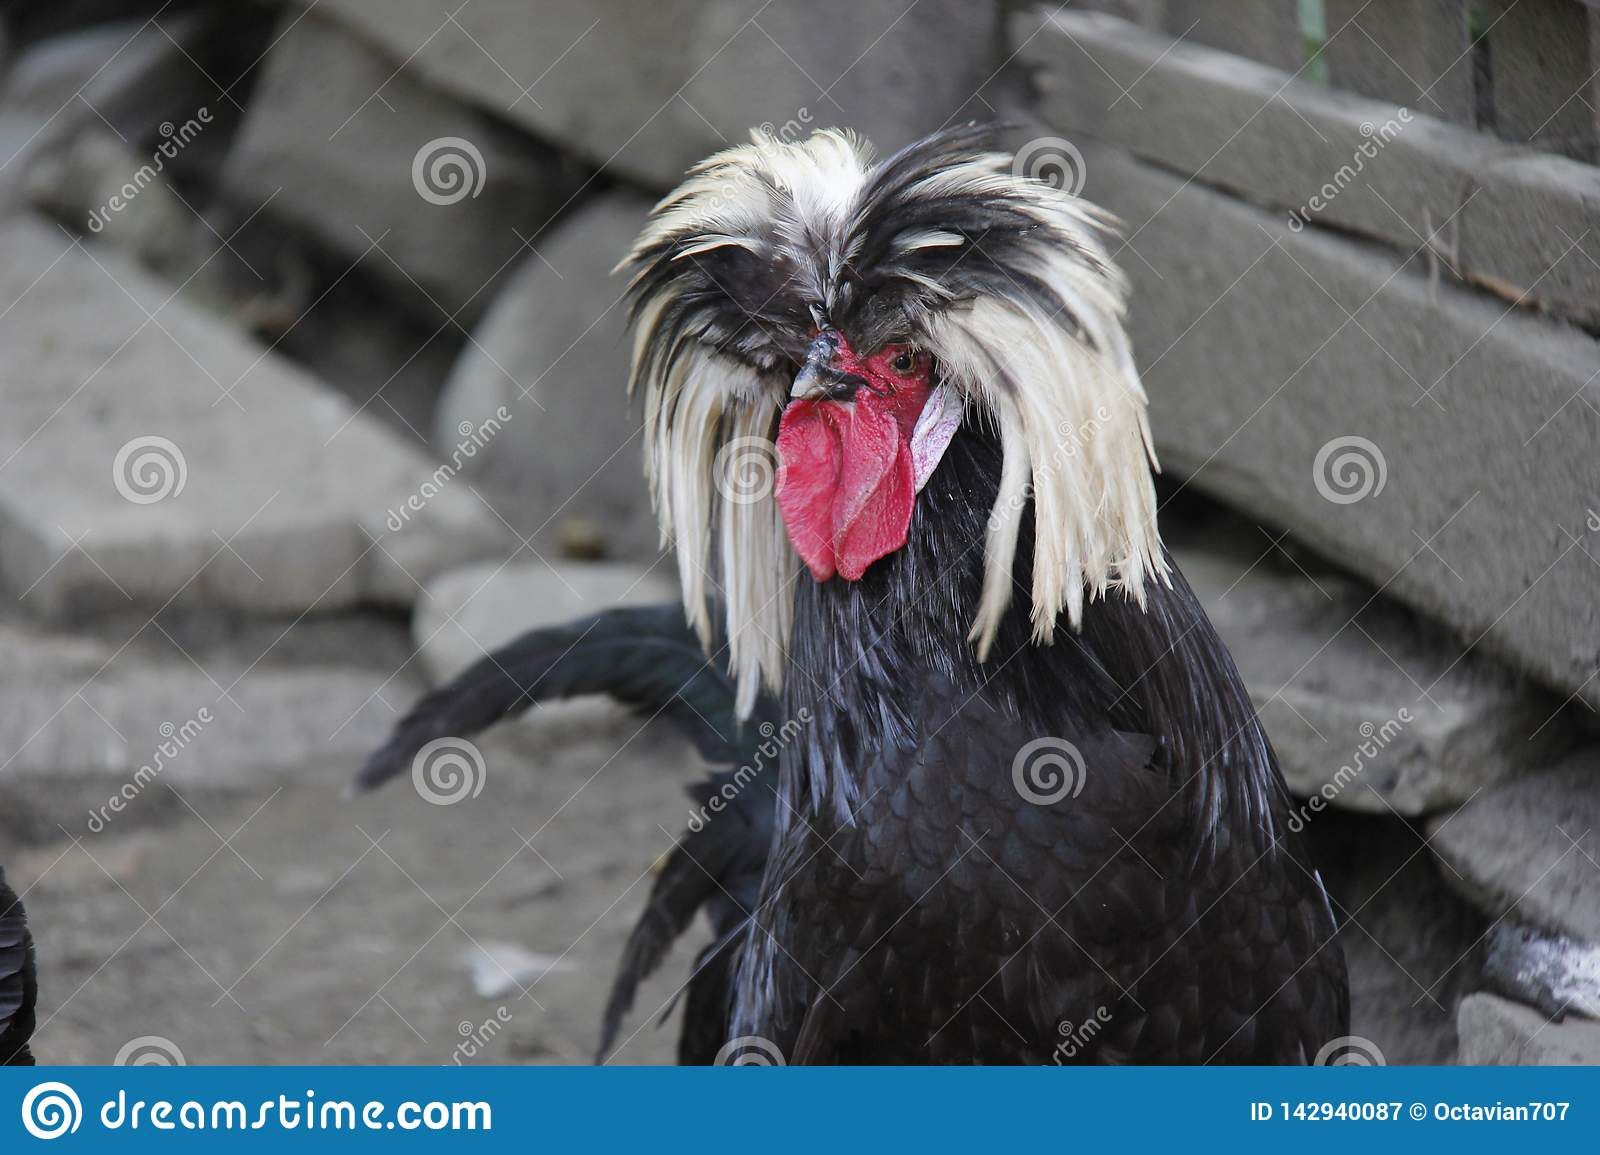 Hairy black and white rooster on grey background